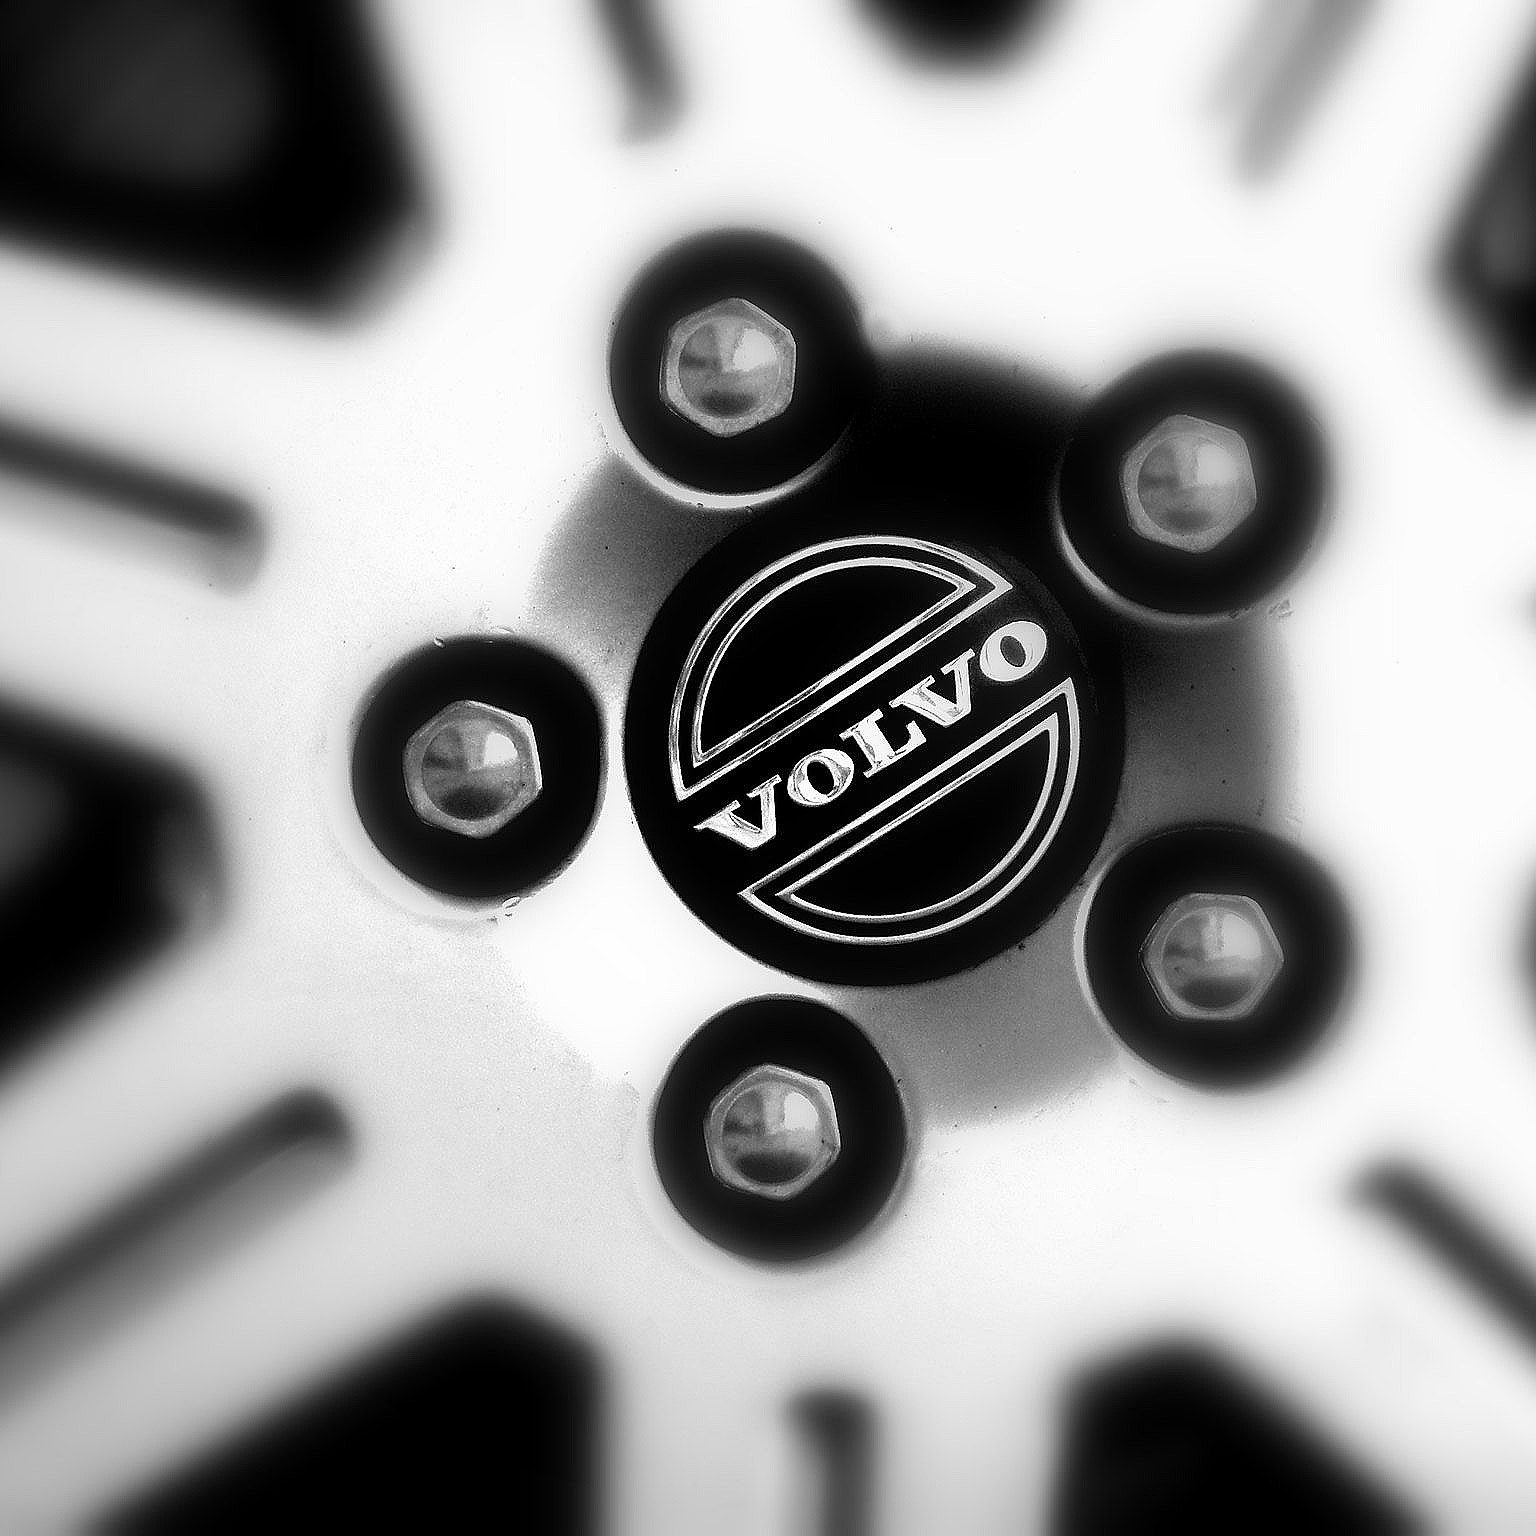 Volvo-wheel-close-up-Popular Mechanix-San-Francisco-auto-car-repair-service.jpg